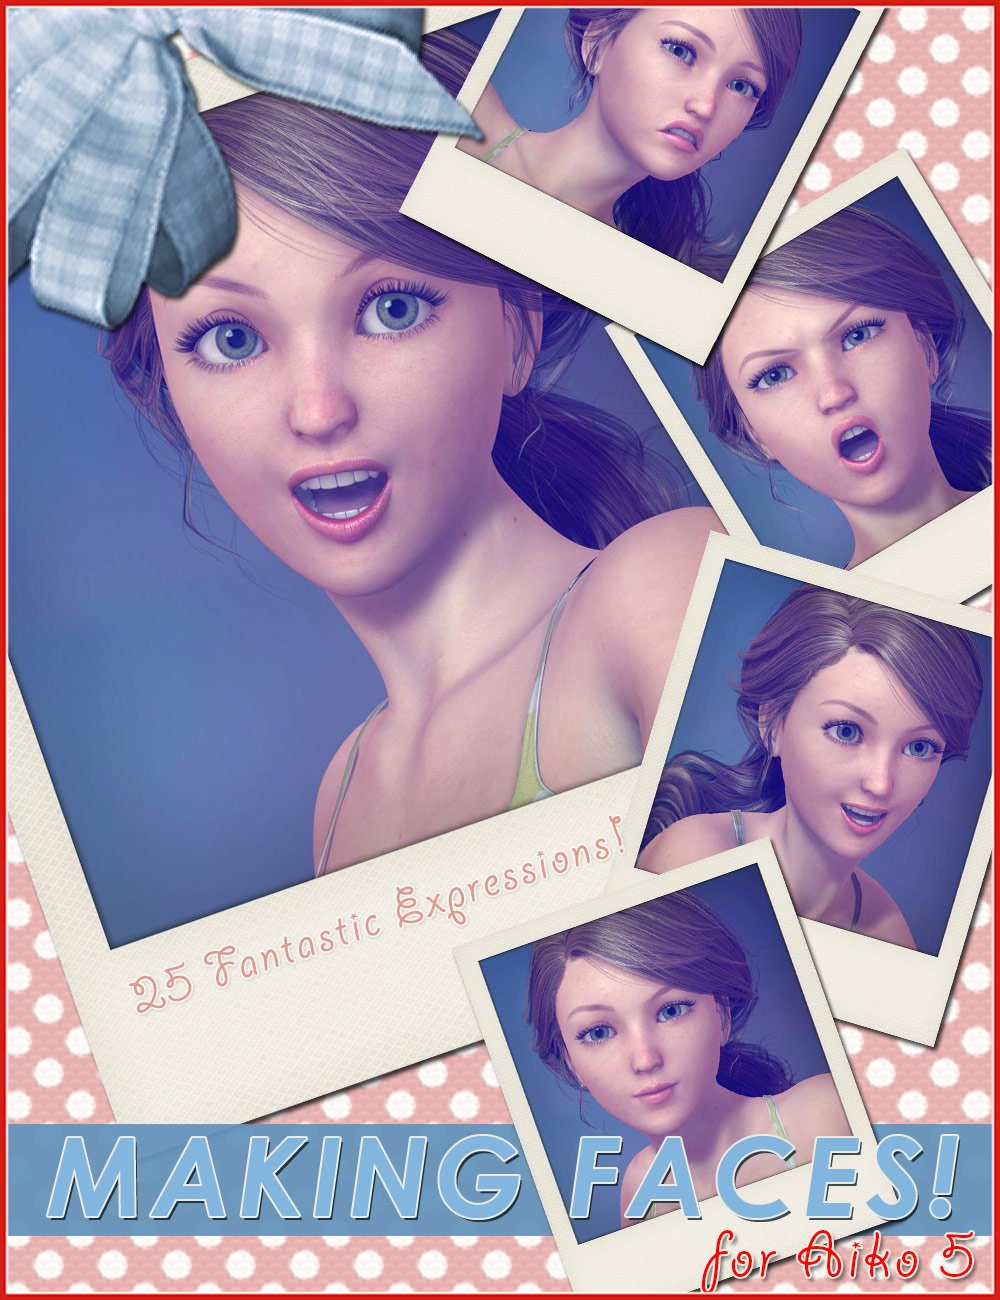 Making Faces for Aiko 5 by: 3DCelebrity, 3D Models by Daz 3D